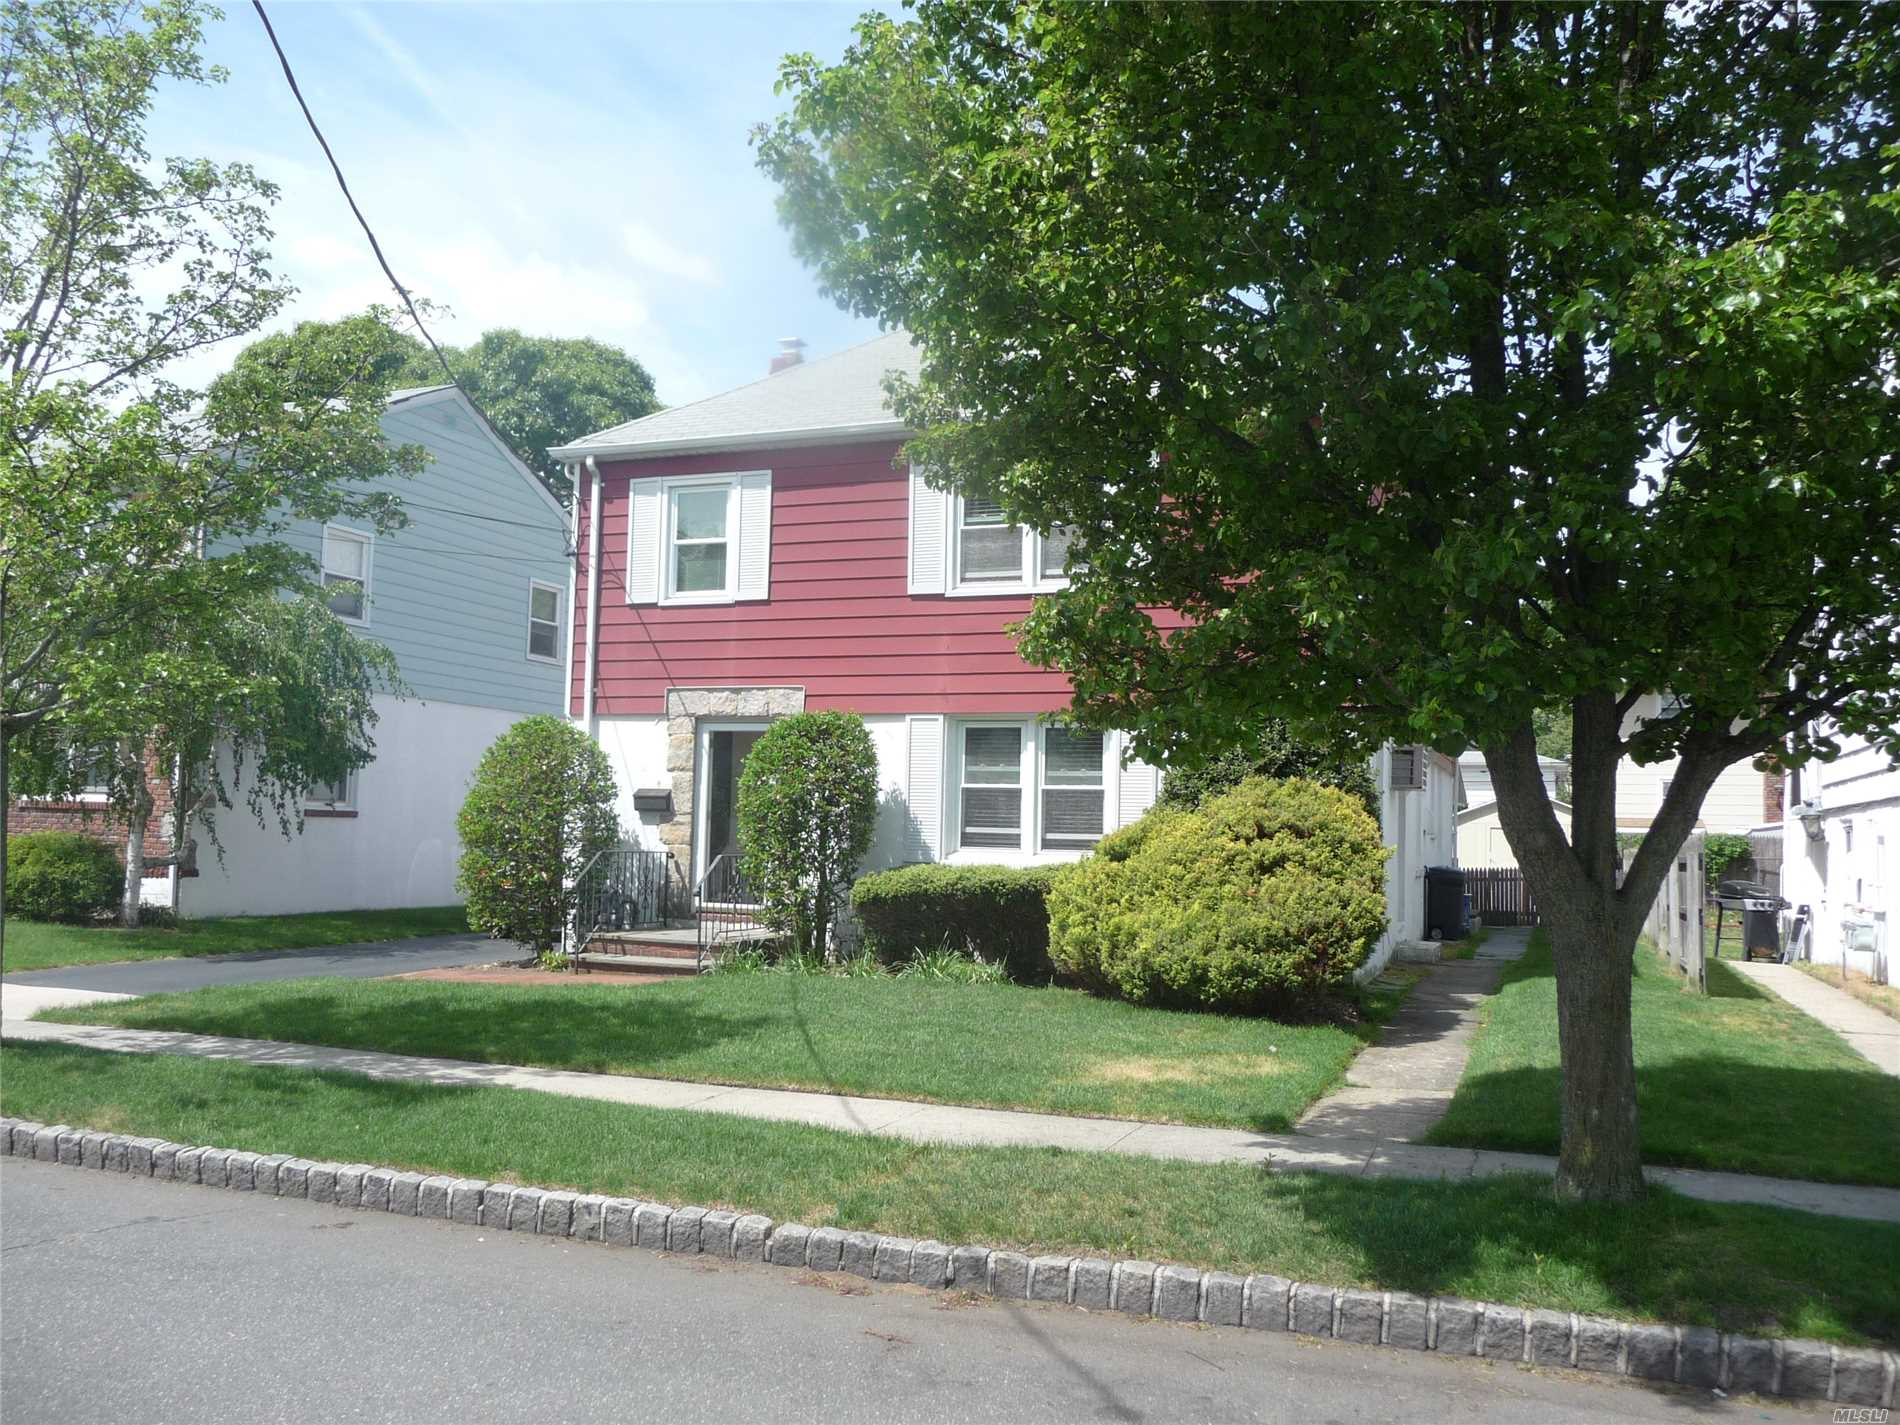 Large First Floor 2 Bedroom, One Bath Apartment. Sunny & Bright. Off Street Parking. Rear Yard With Patio. New Kitchen, Large Living Room, Fdr. Hardwood Floors Throughout. Washer/Dryer. Quiet St. Close To All.